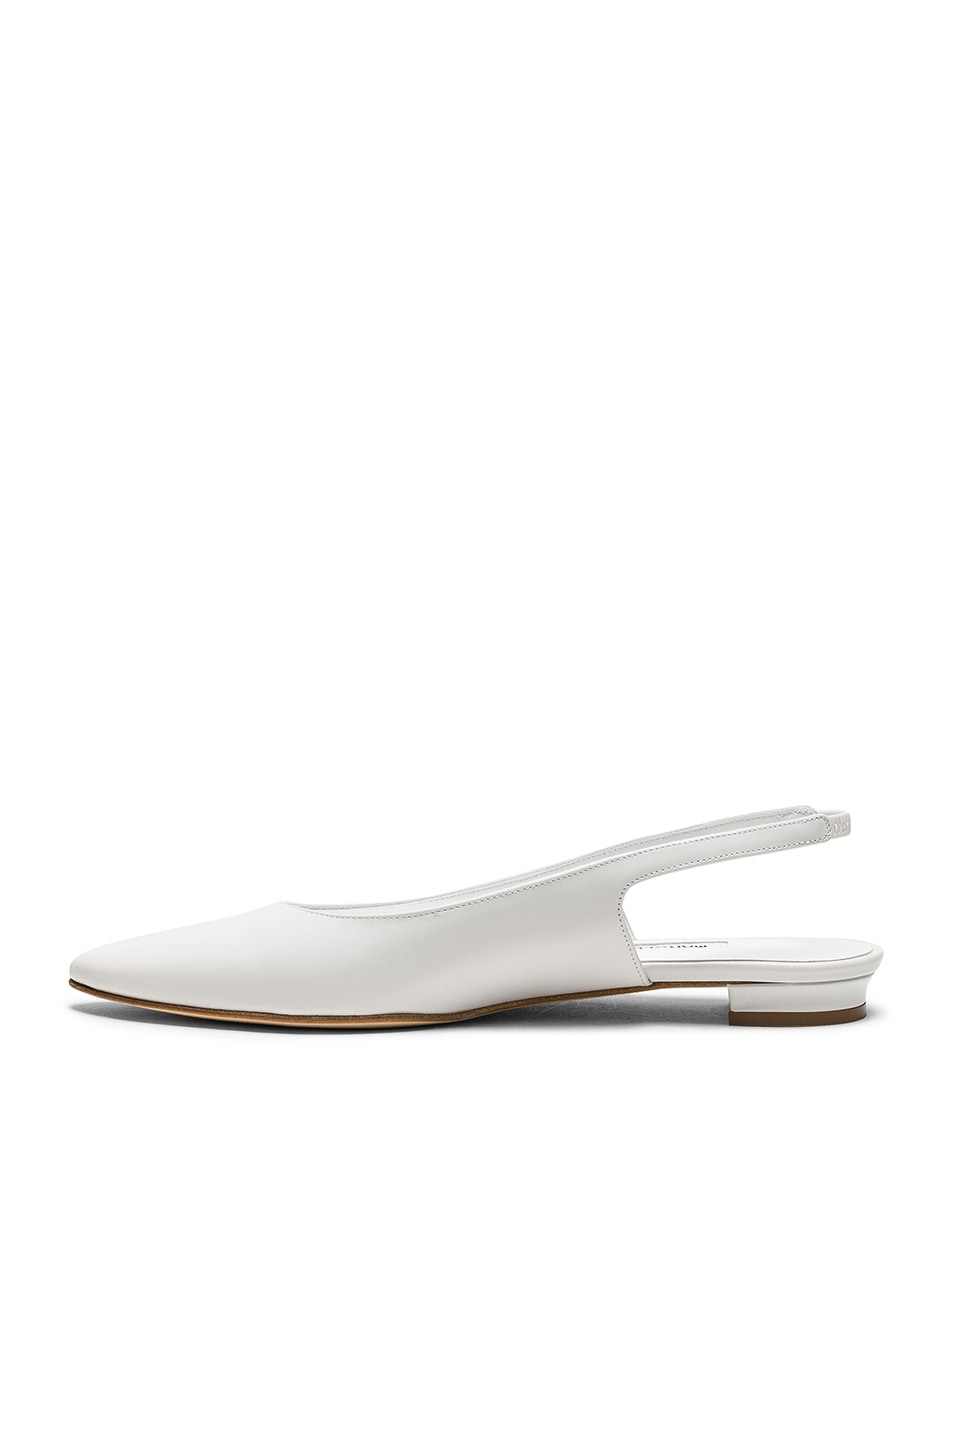 Image 5 of Manolo Blahnik Leather Allura Flats in White Calf